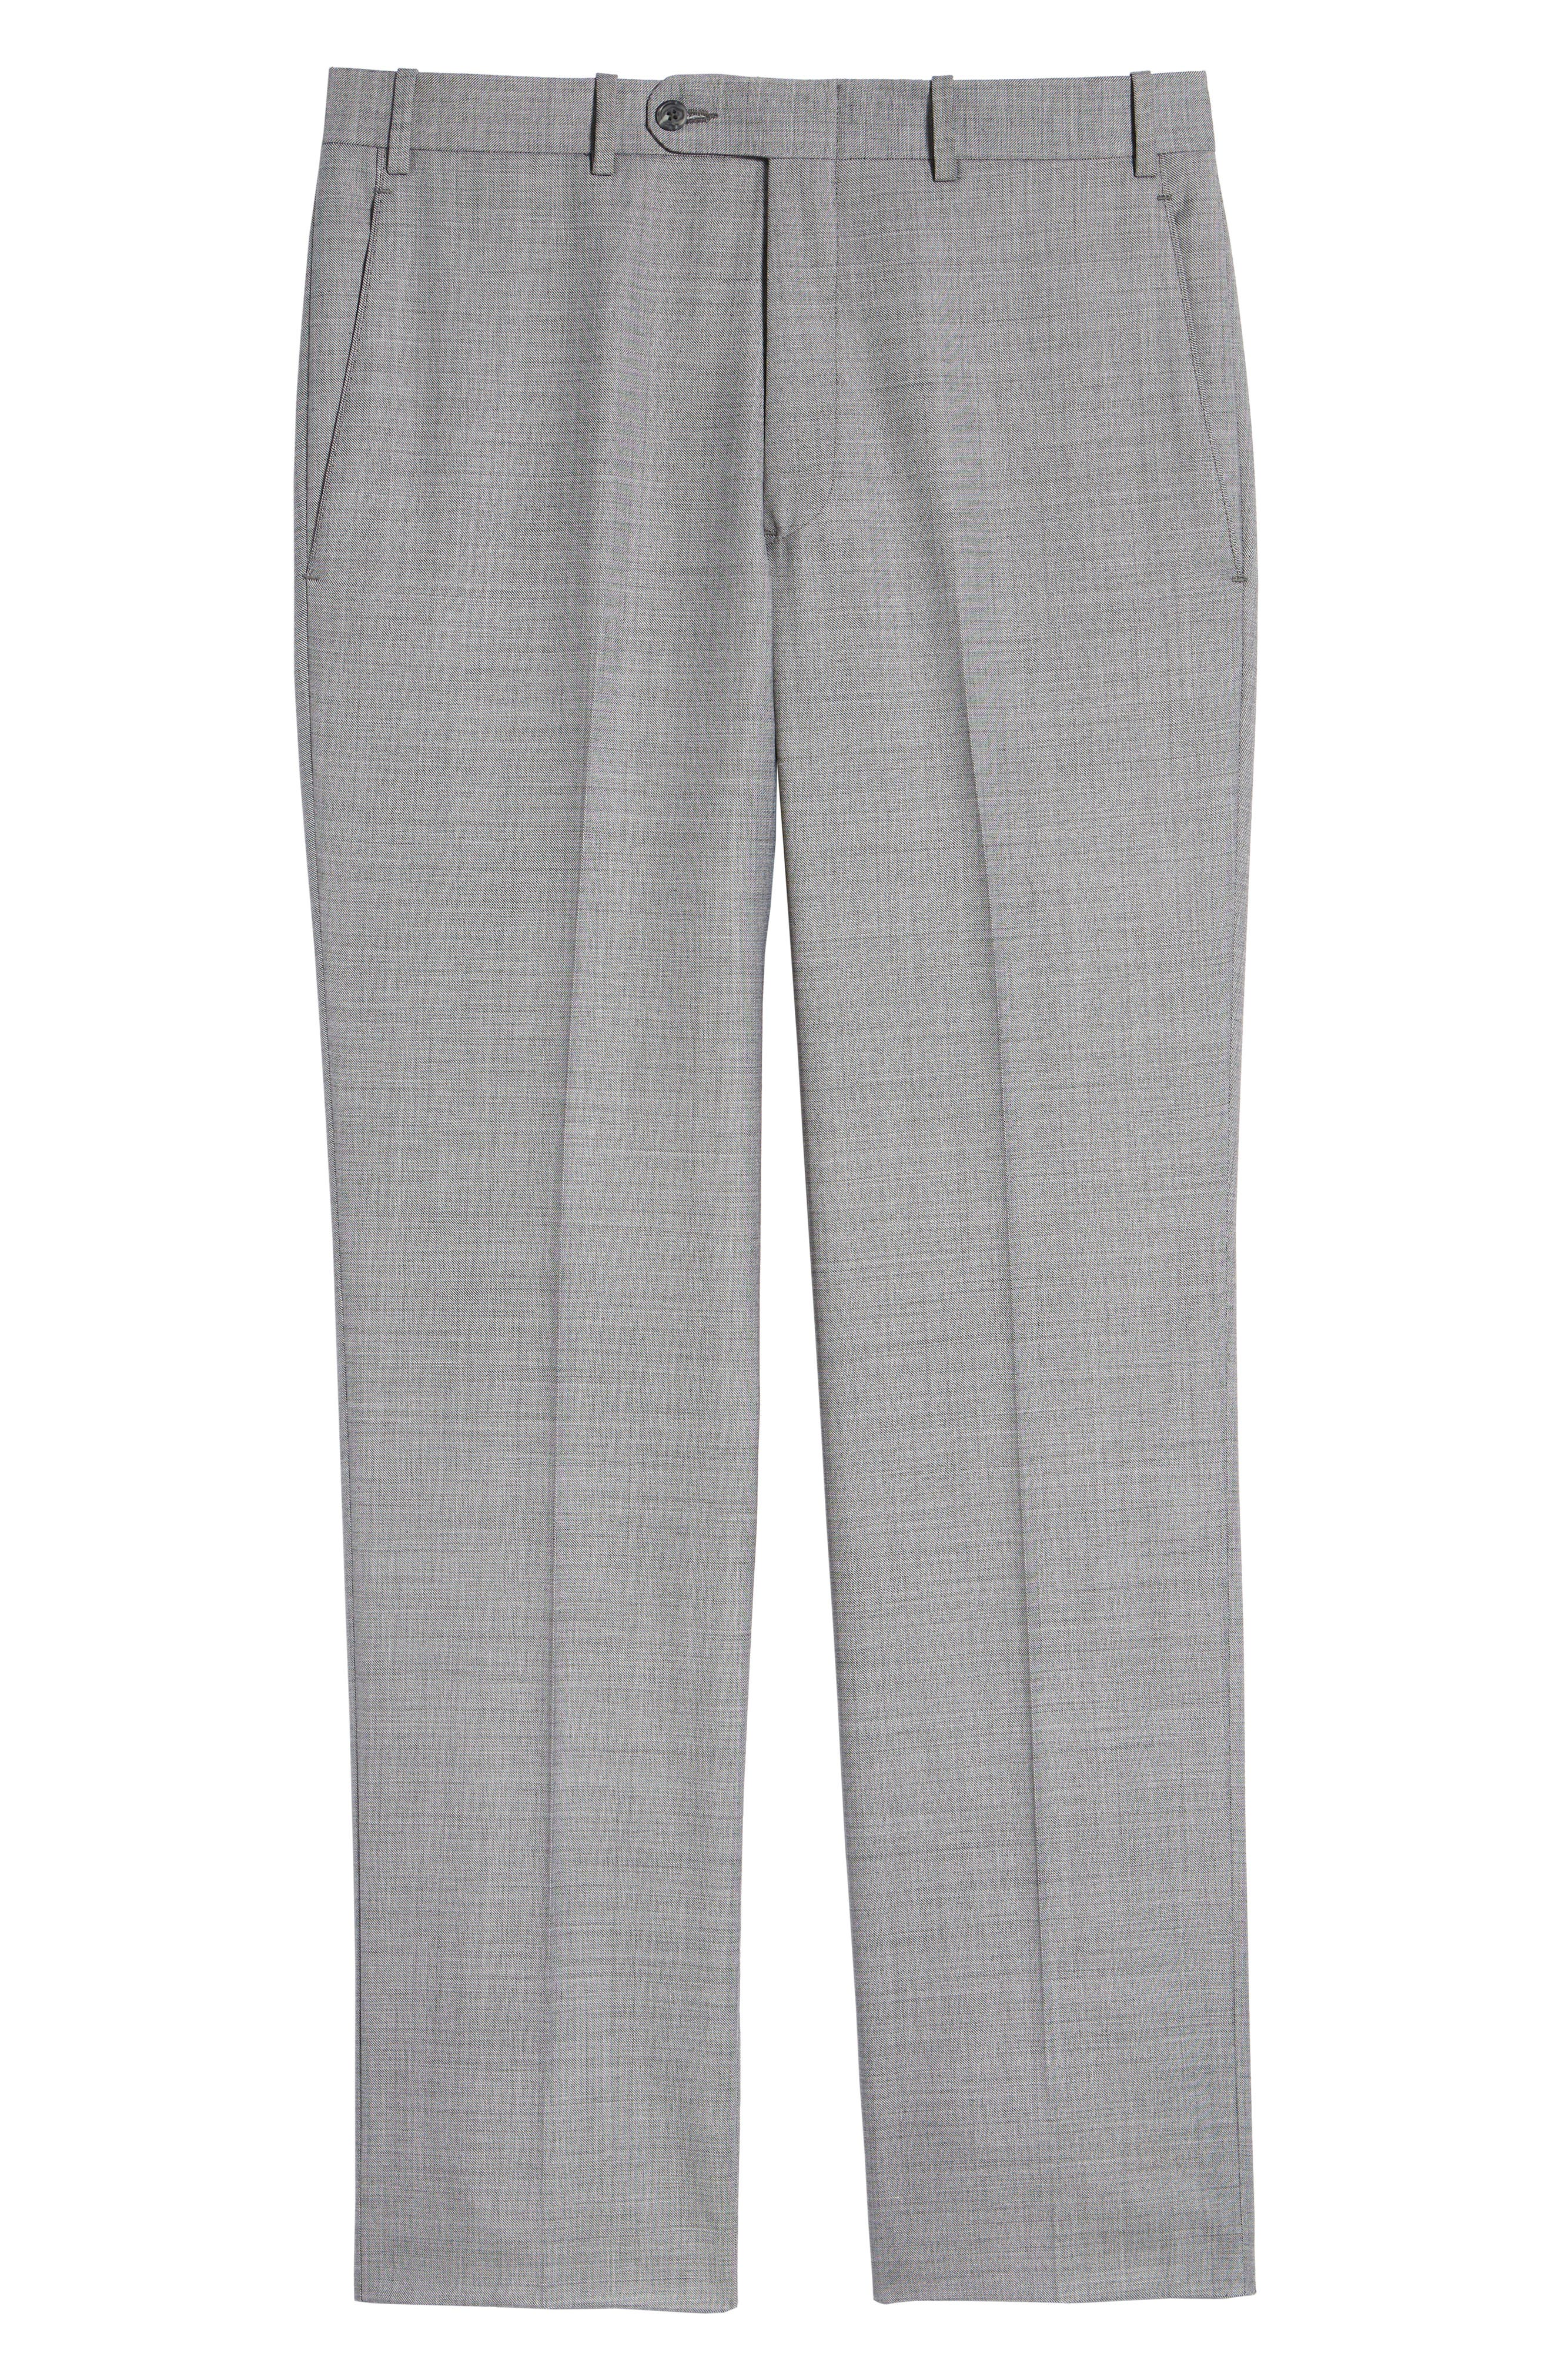 Torino Flat Front Solid Wool Trousers,                             Alternate thumbnail 17, color,